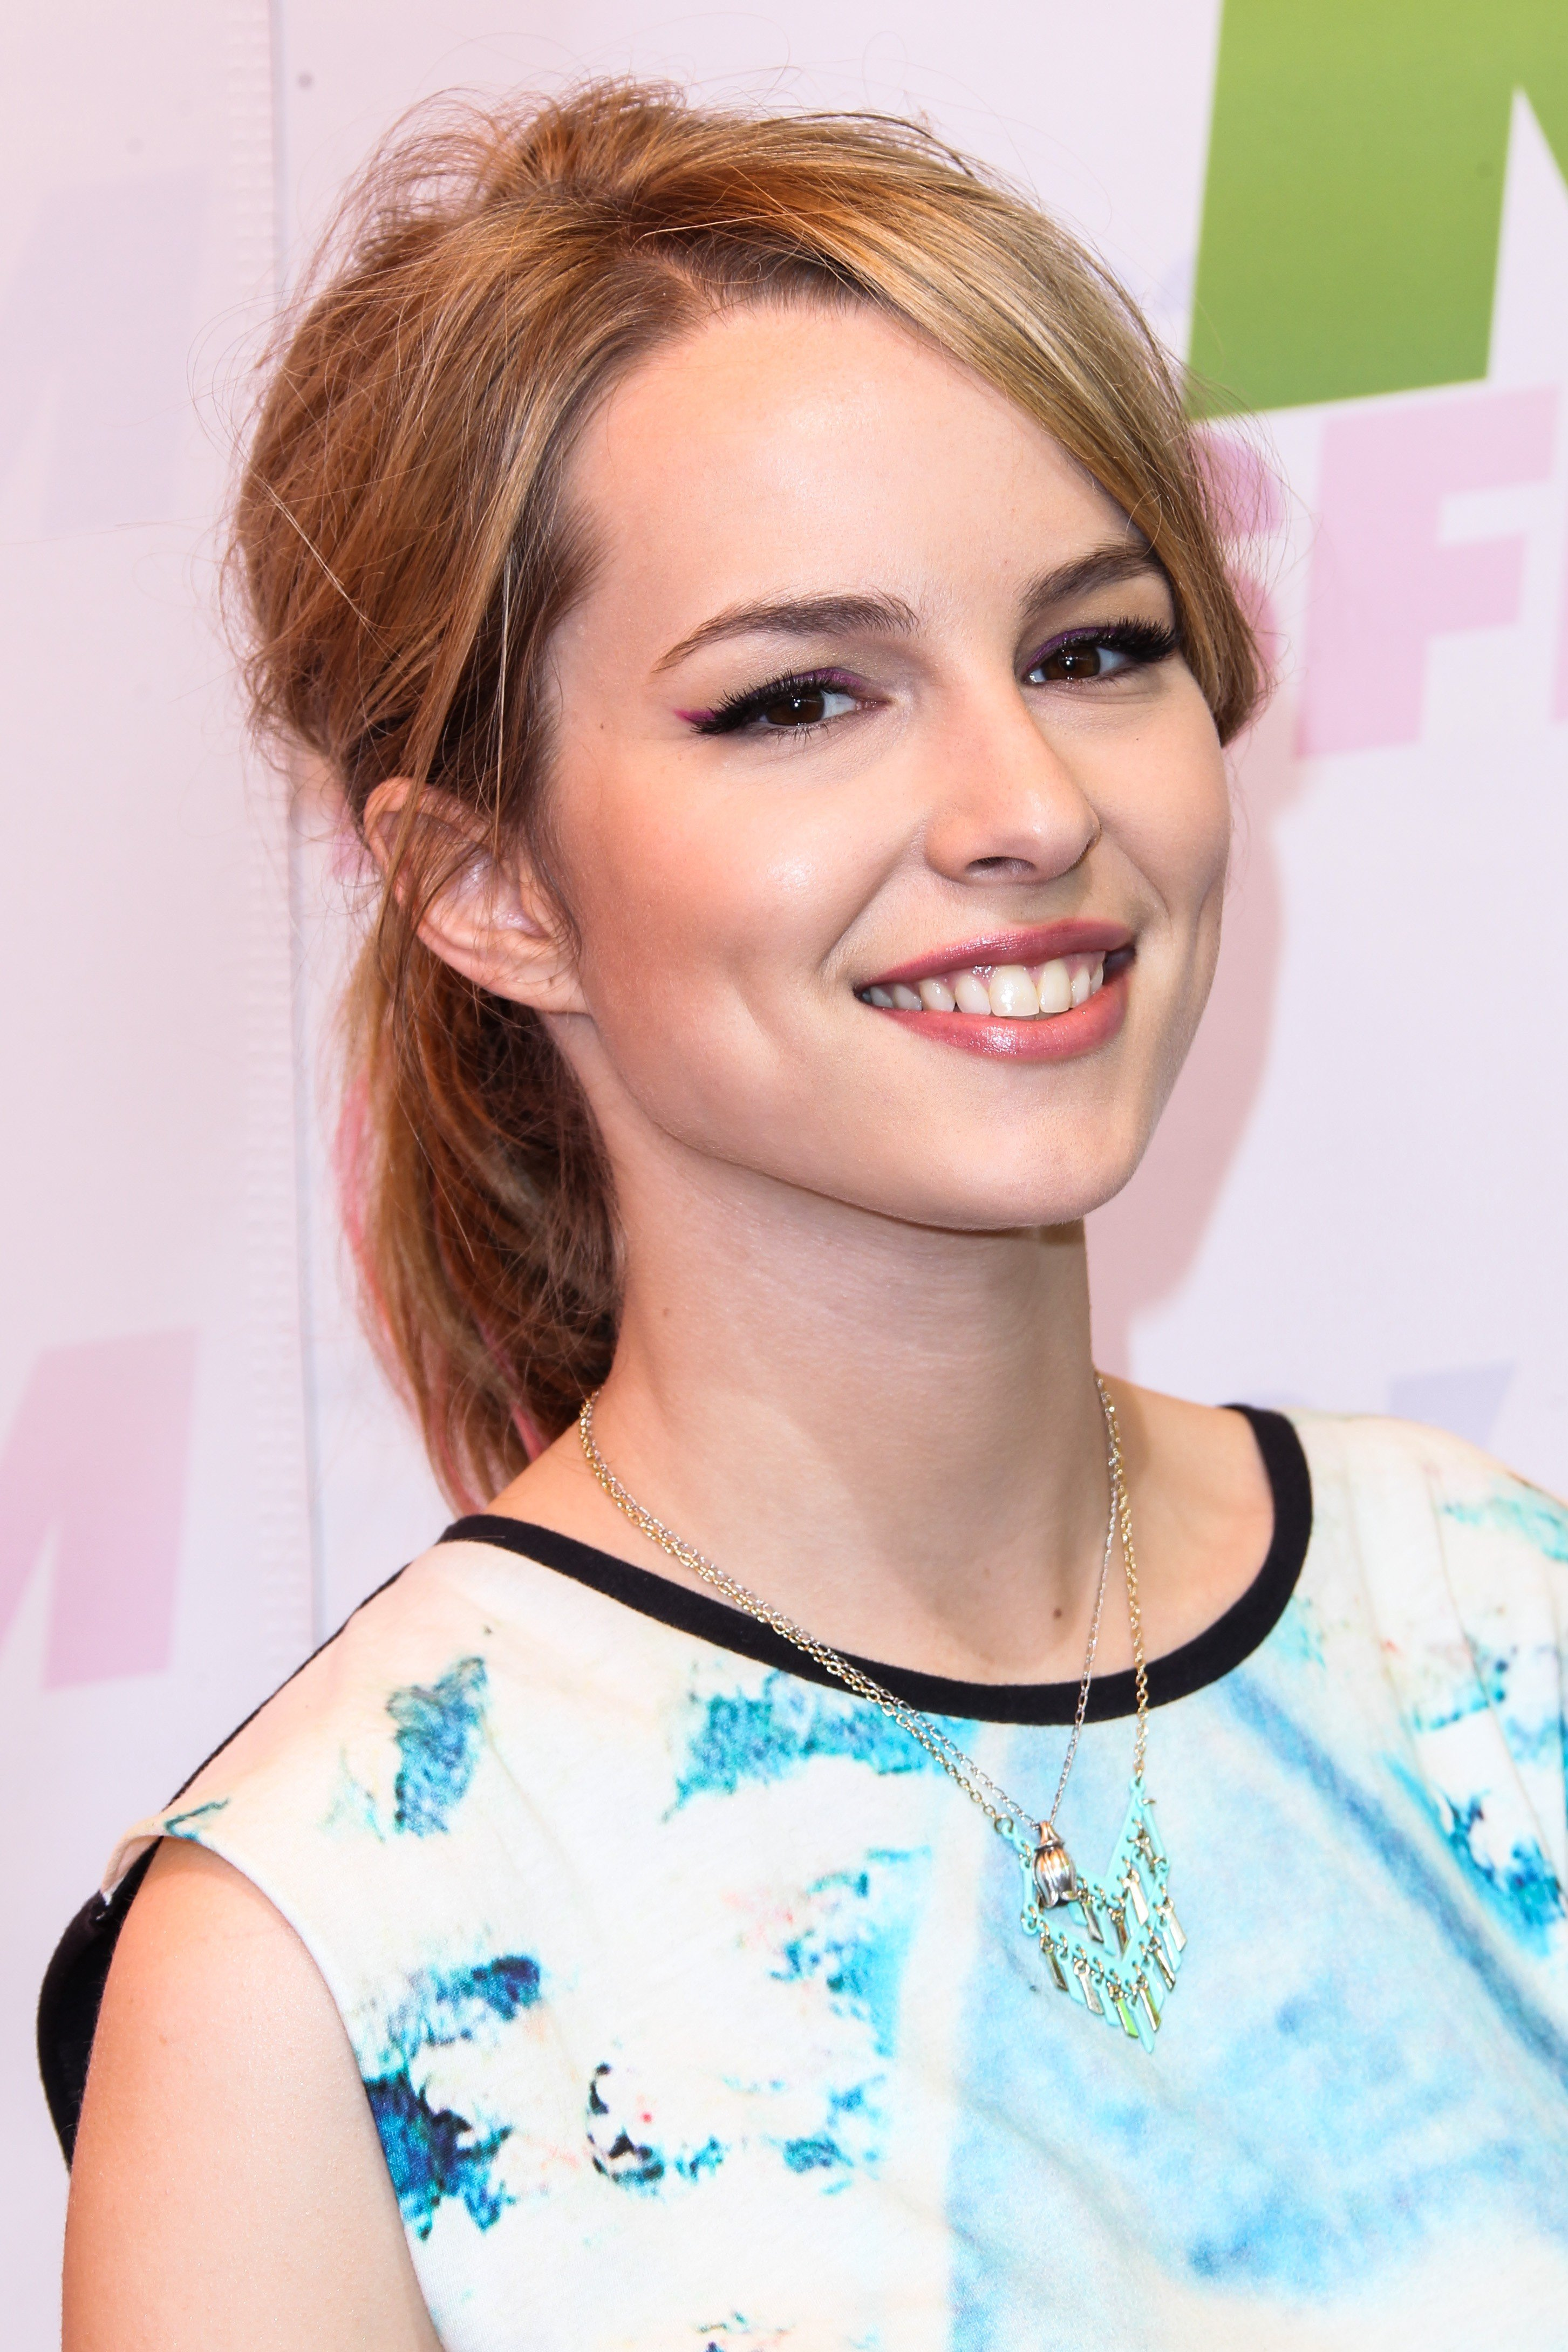 bridgit mendler ready or not lyrics